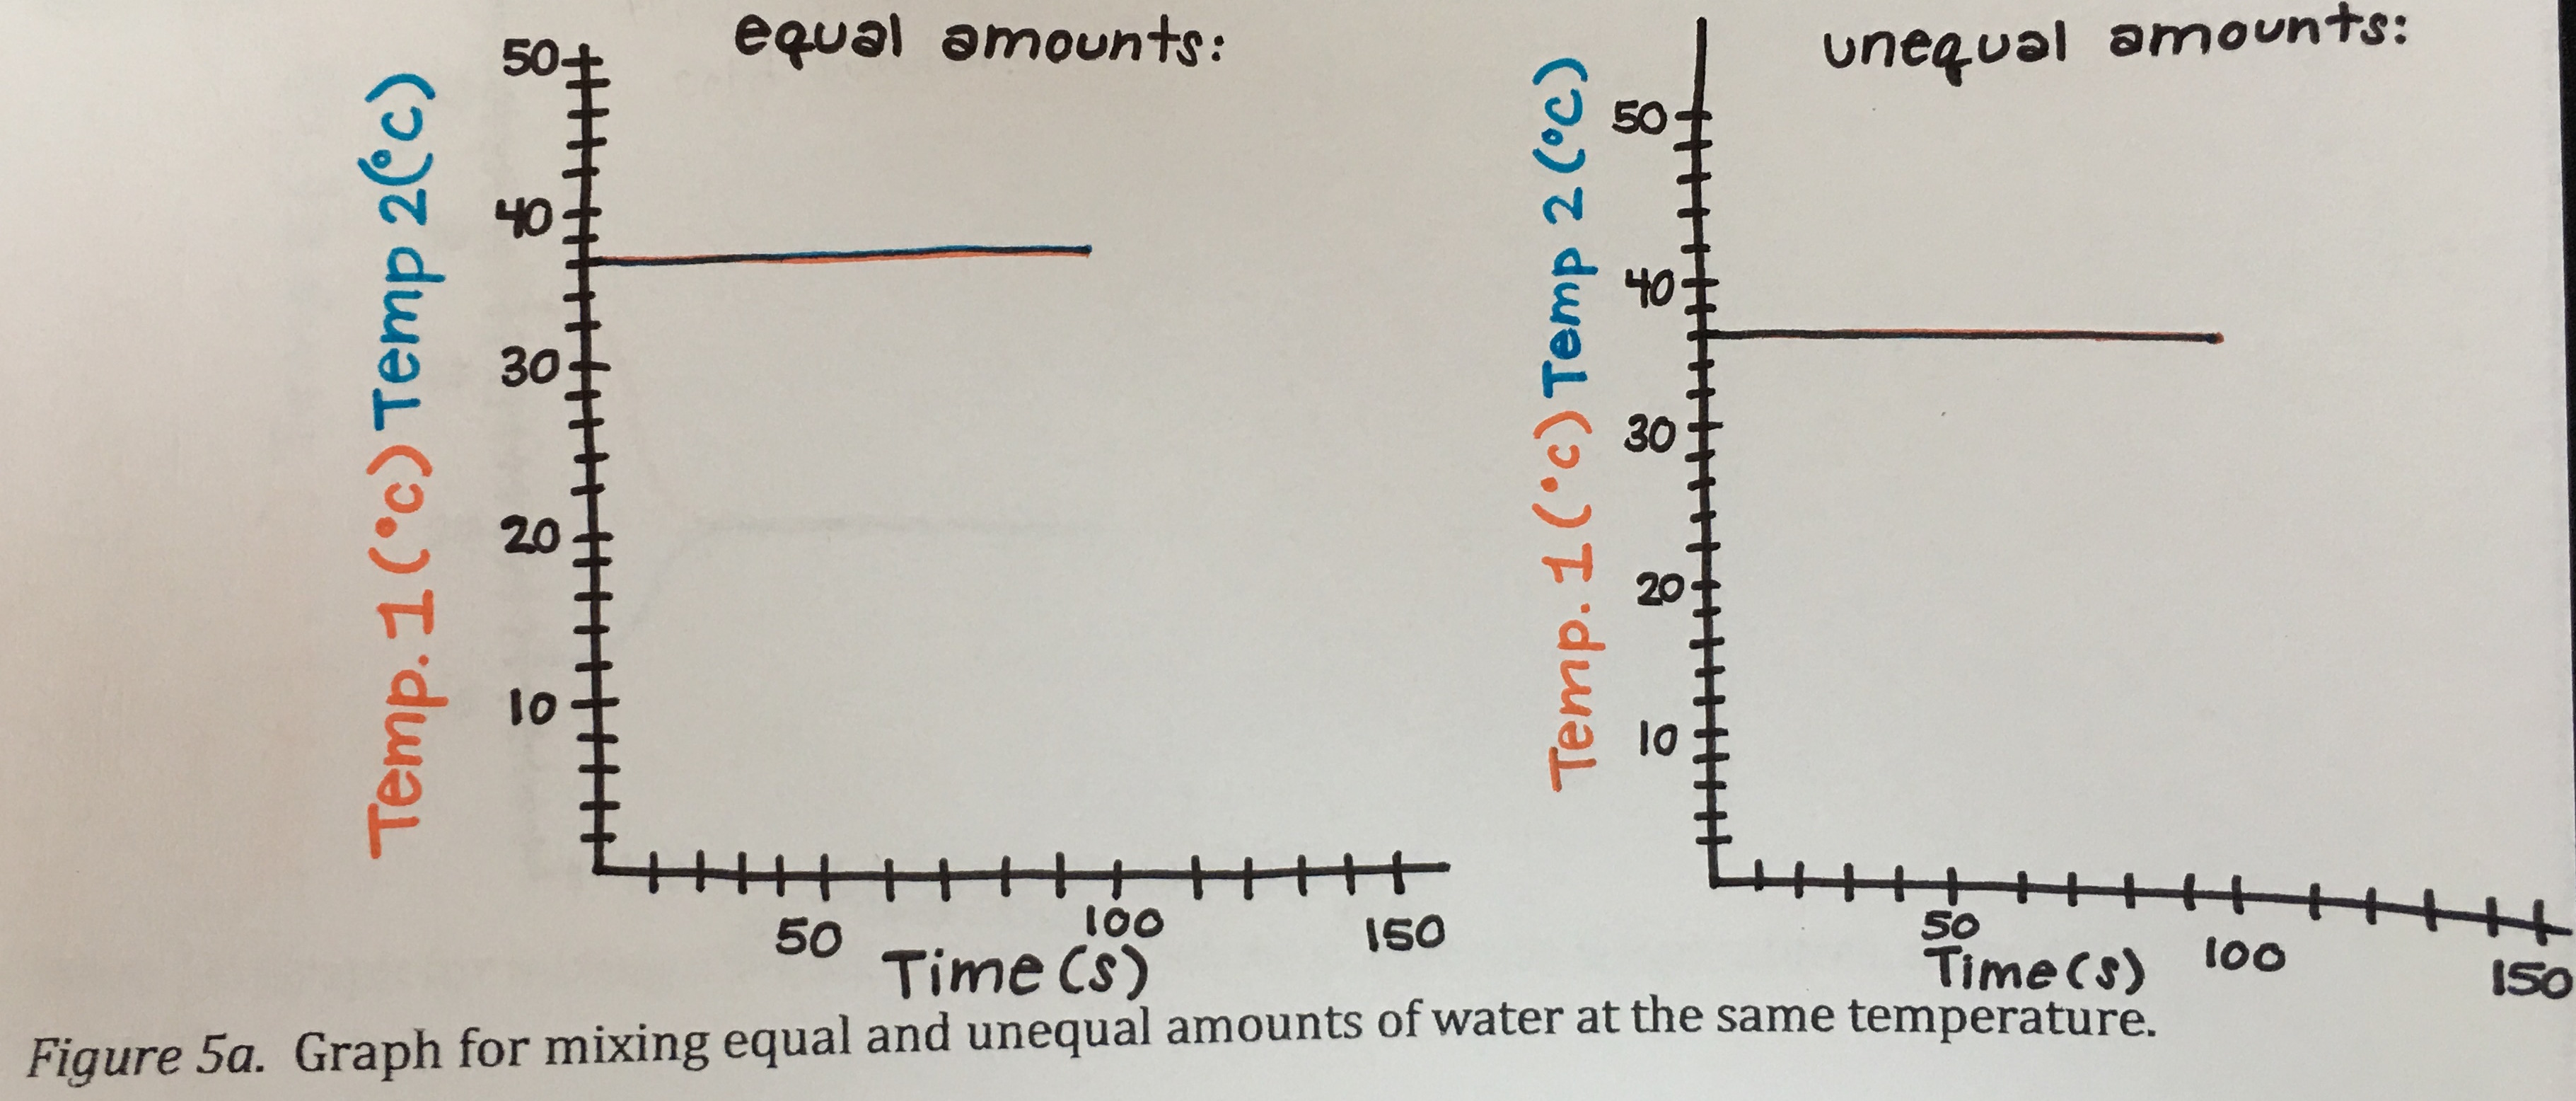 Mixing equal and unequal amounts at the same temperature.